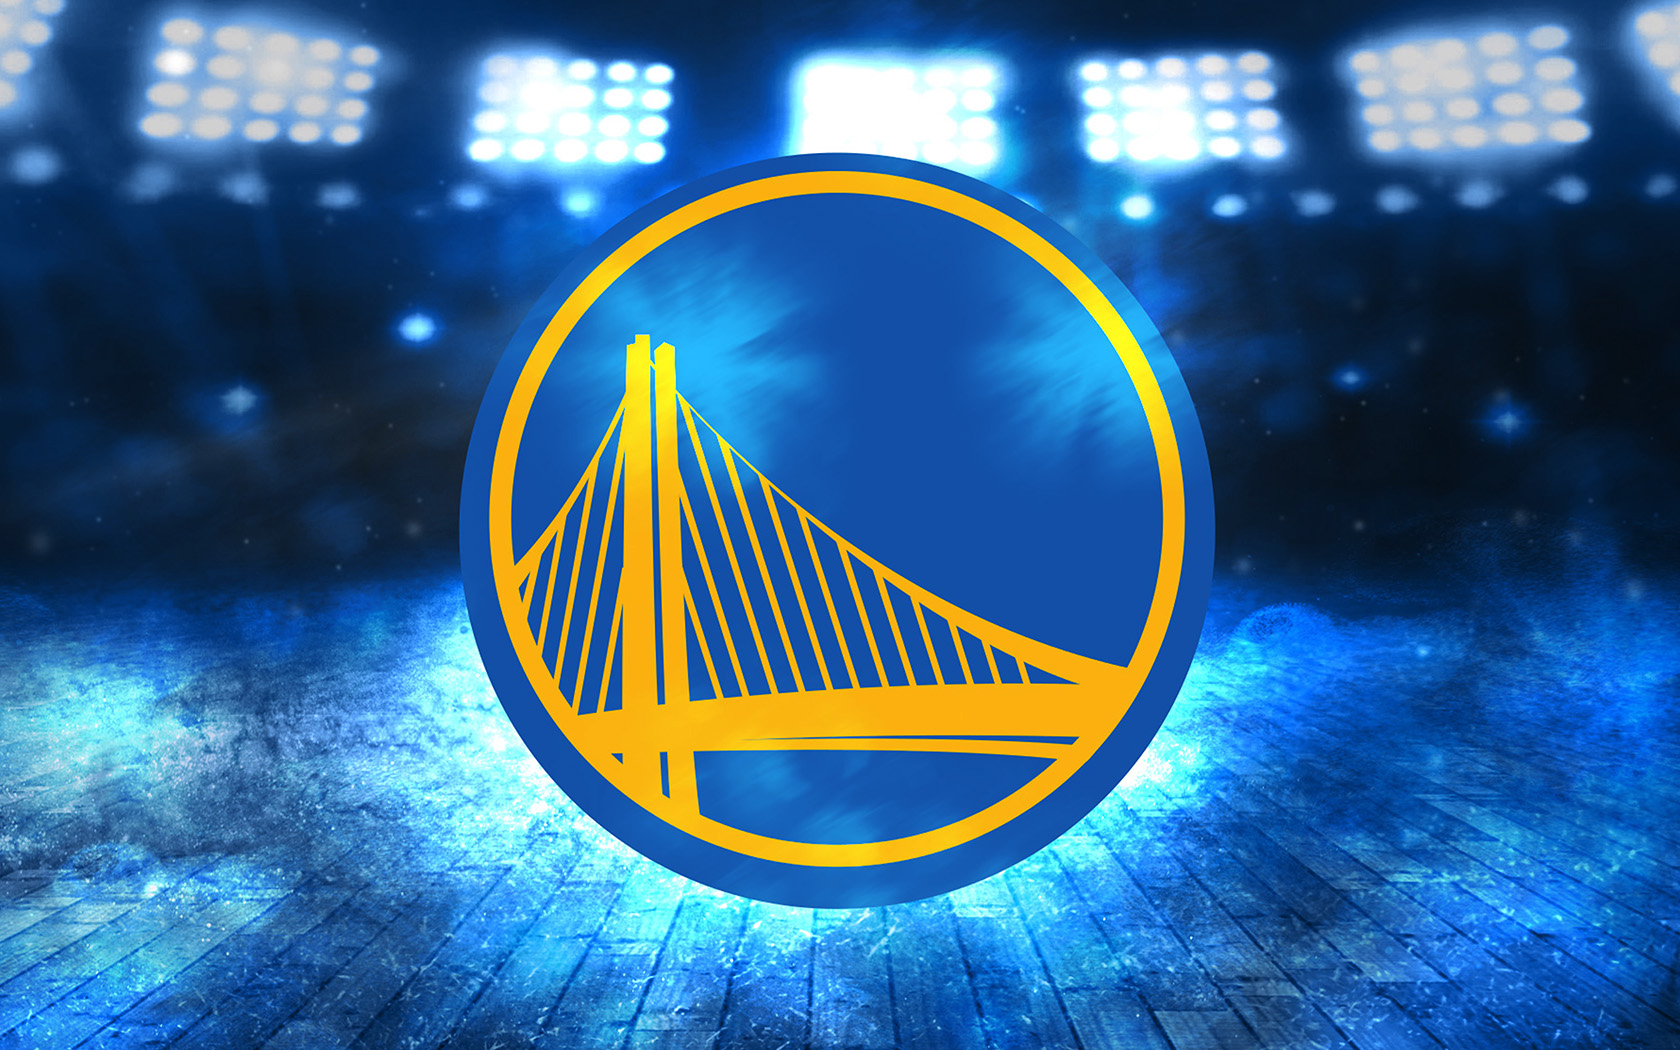 Cute Fall Computer Wallpaper Ar86 Golden State Warriors Logo Nba Sports Art